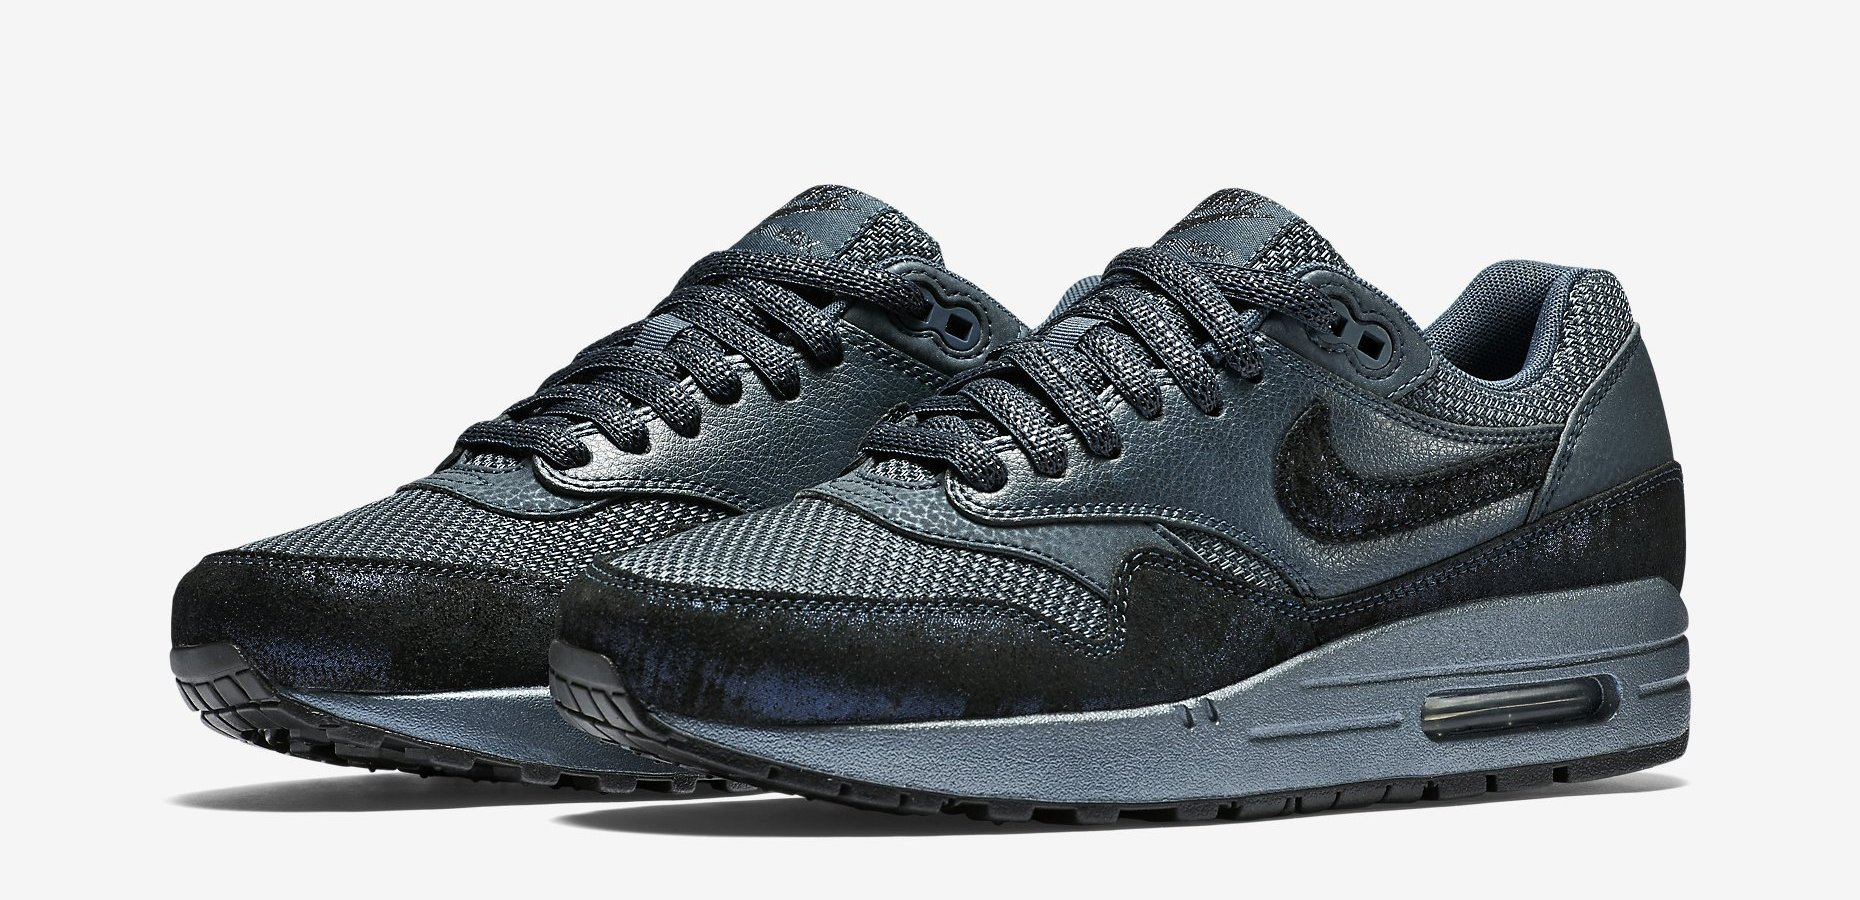 Nike Womens Air Max 1 Premium Color: Squadron Blue/Squadron Blue-Metallic  Armory Navy Style: 454746-401. Price: $120.00